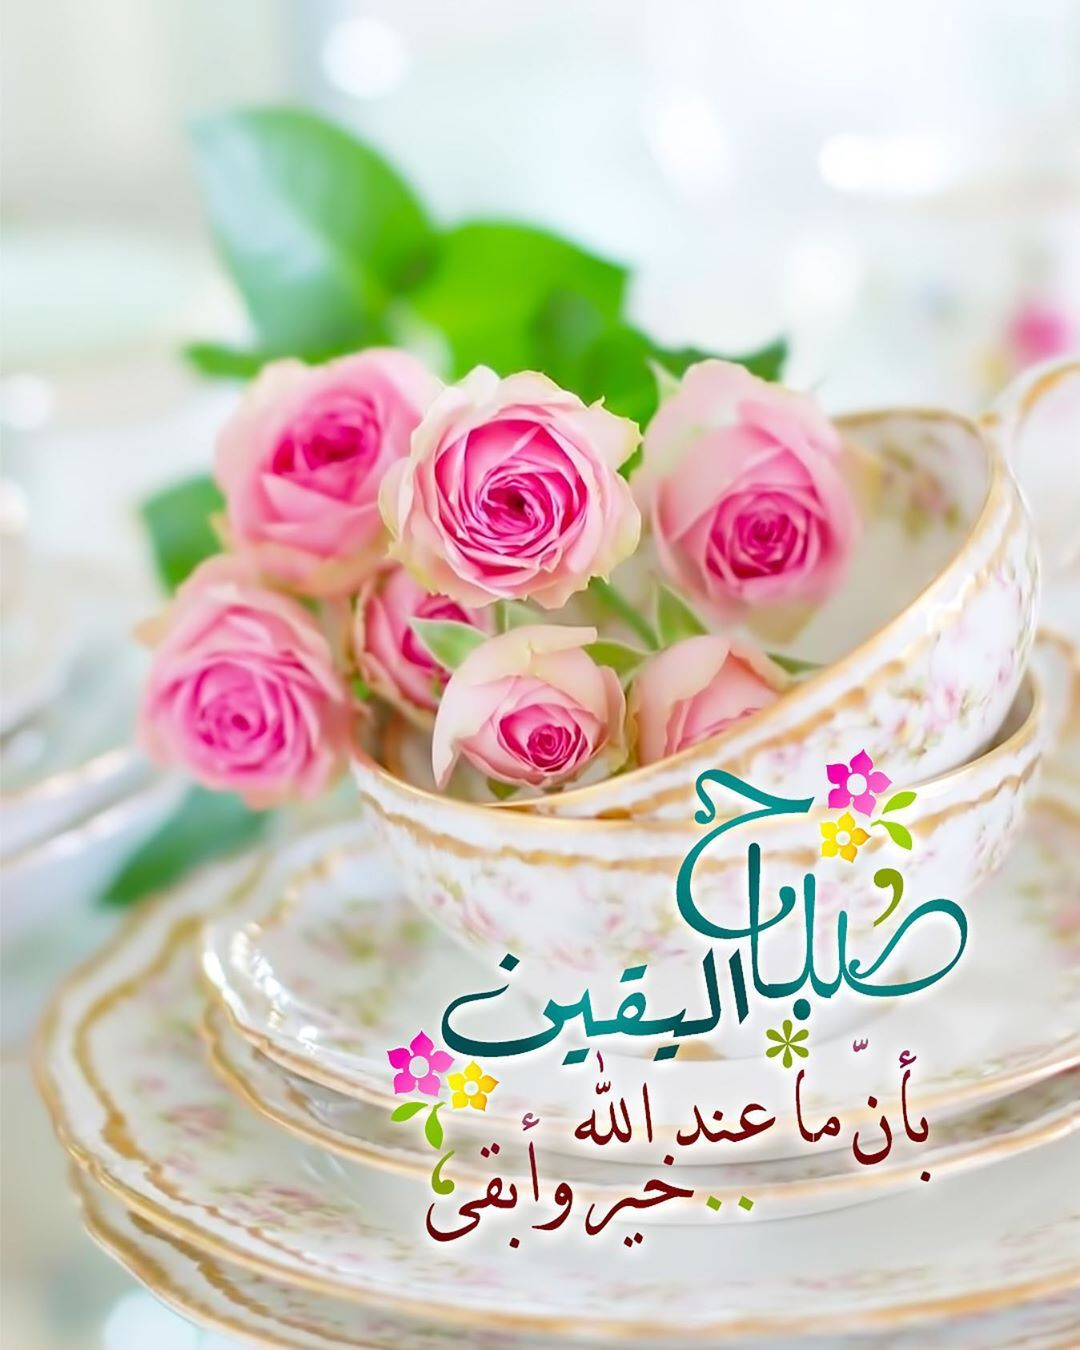 Pearla0203 On Instagram ص باح الي قين بأن ماعند الله خير وأبقى ㅤ Good Morning Flowers Good Morning Greetings Beautiful Morning Messages